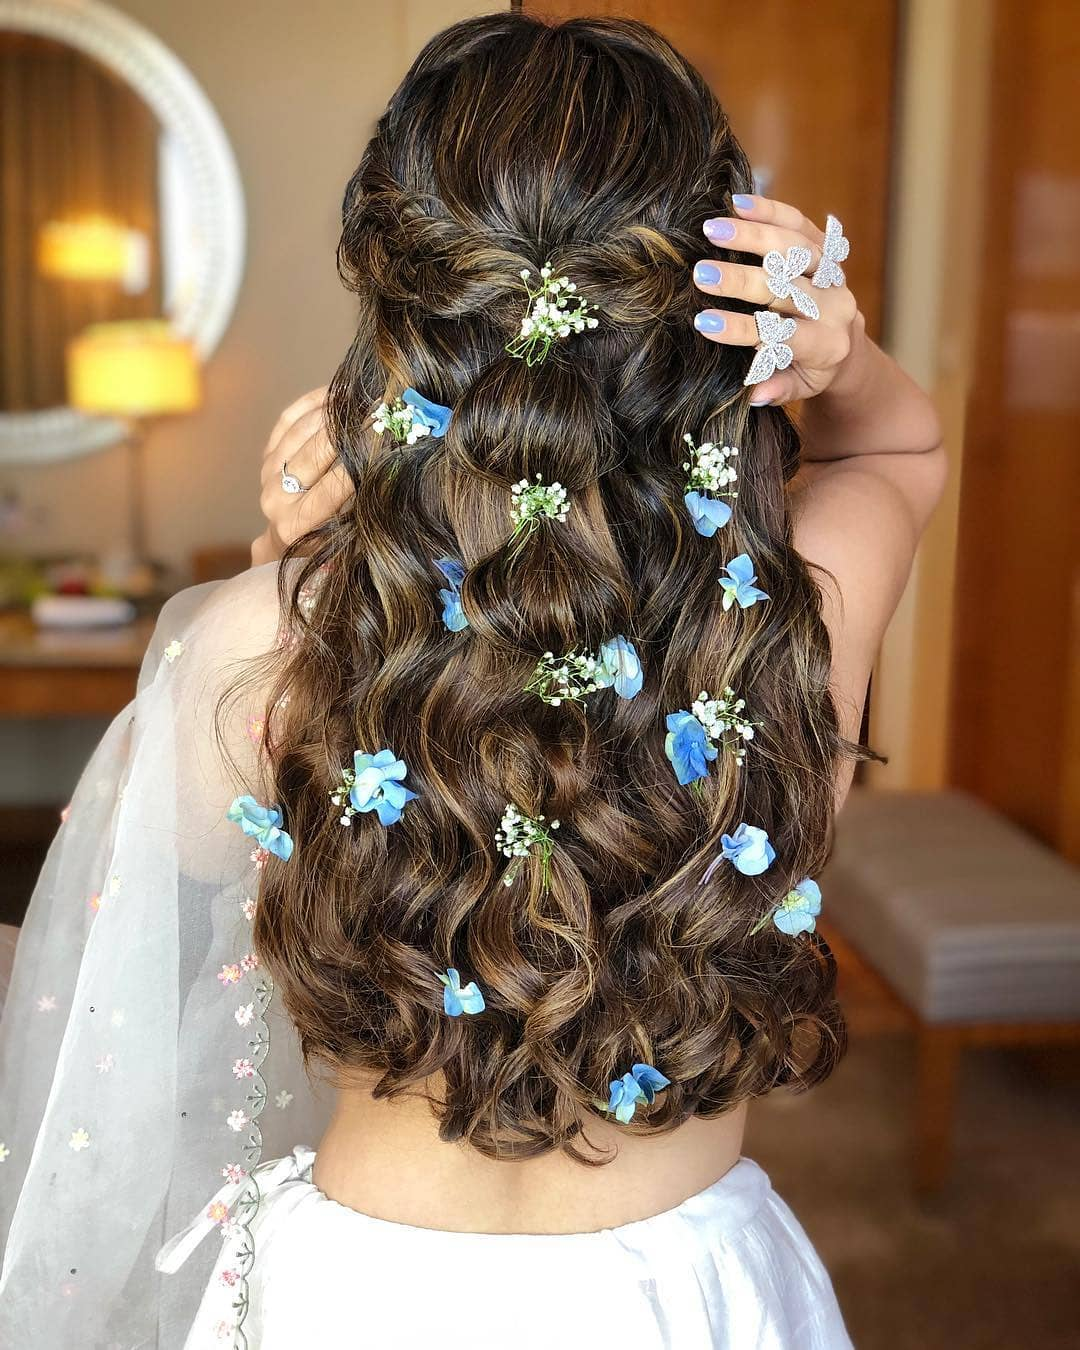 Indian wedding hairstyles: Woman with long flowing dark brown and highlighted hair styled into a half-up bubble with flowers in it